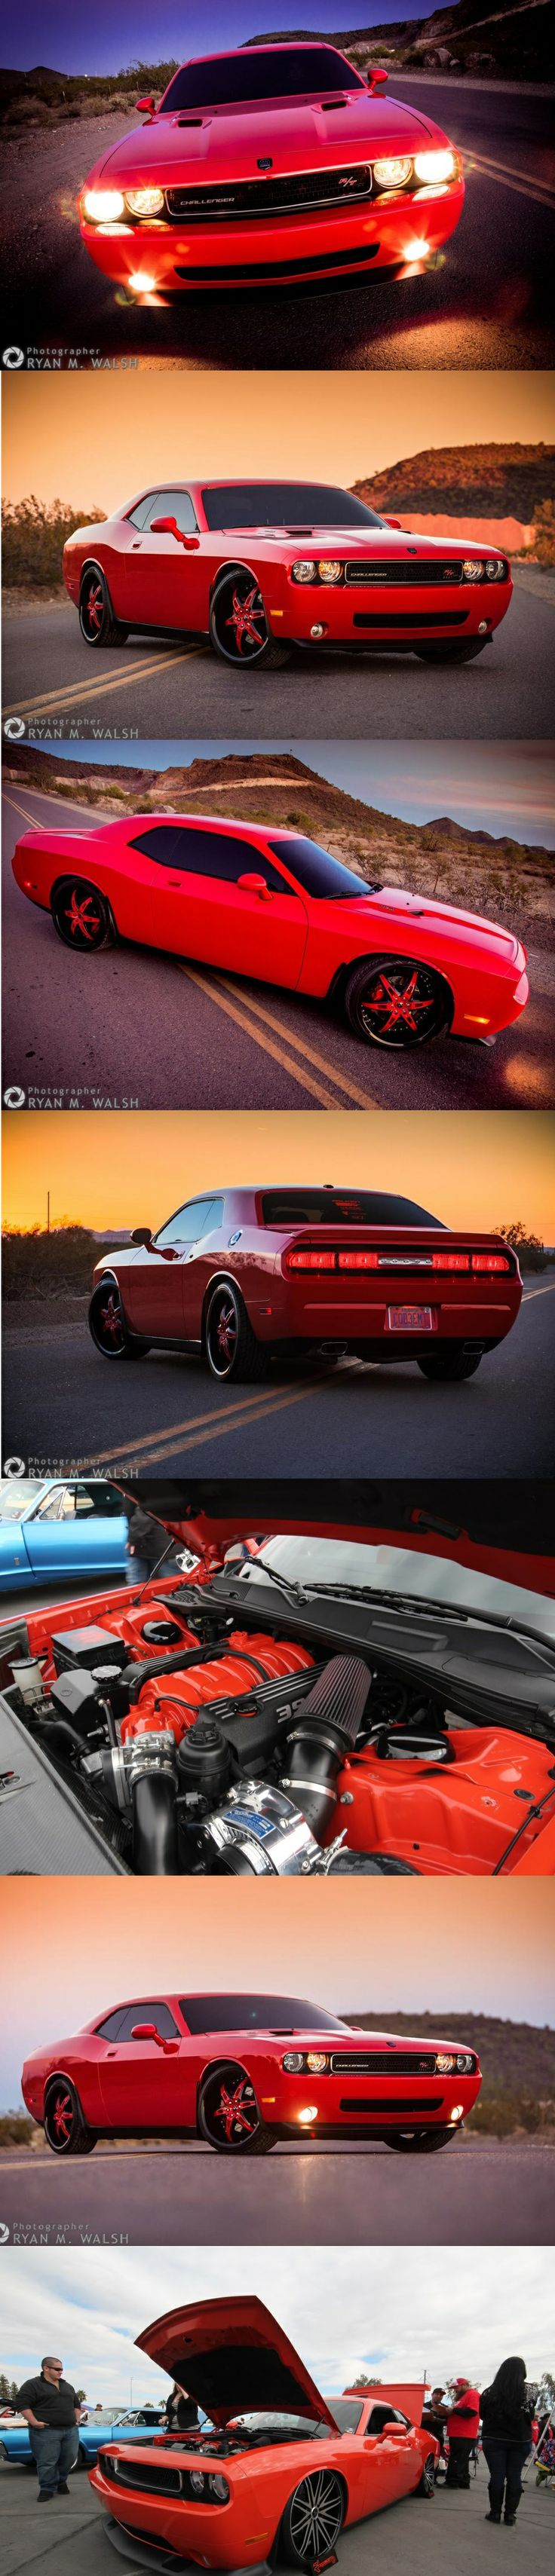 Best Dodge Challenger Srt Ideas On Pinterest - Epic stunt driving dodge challenger